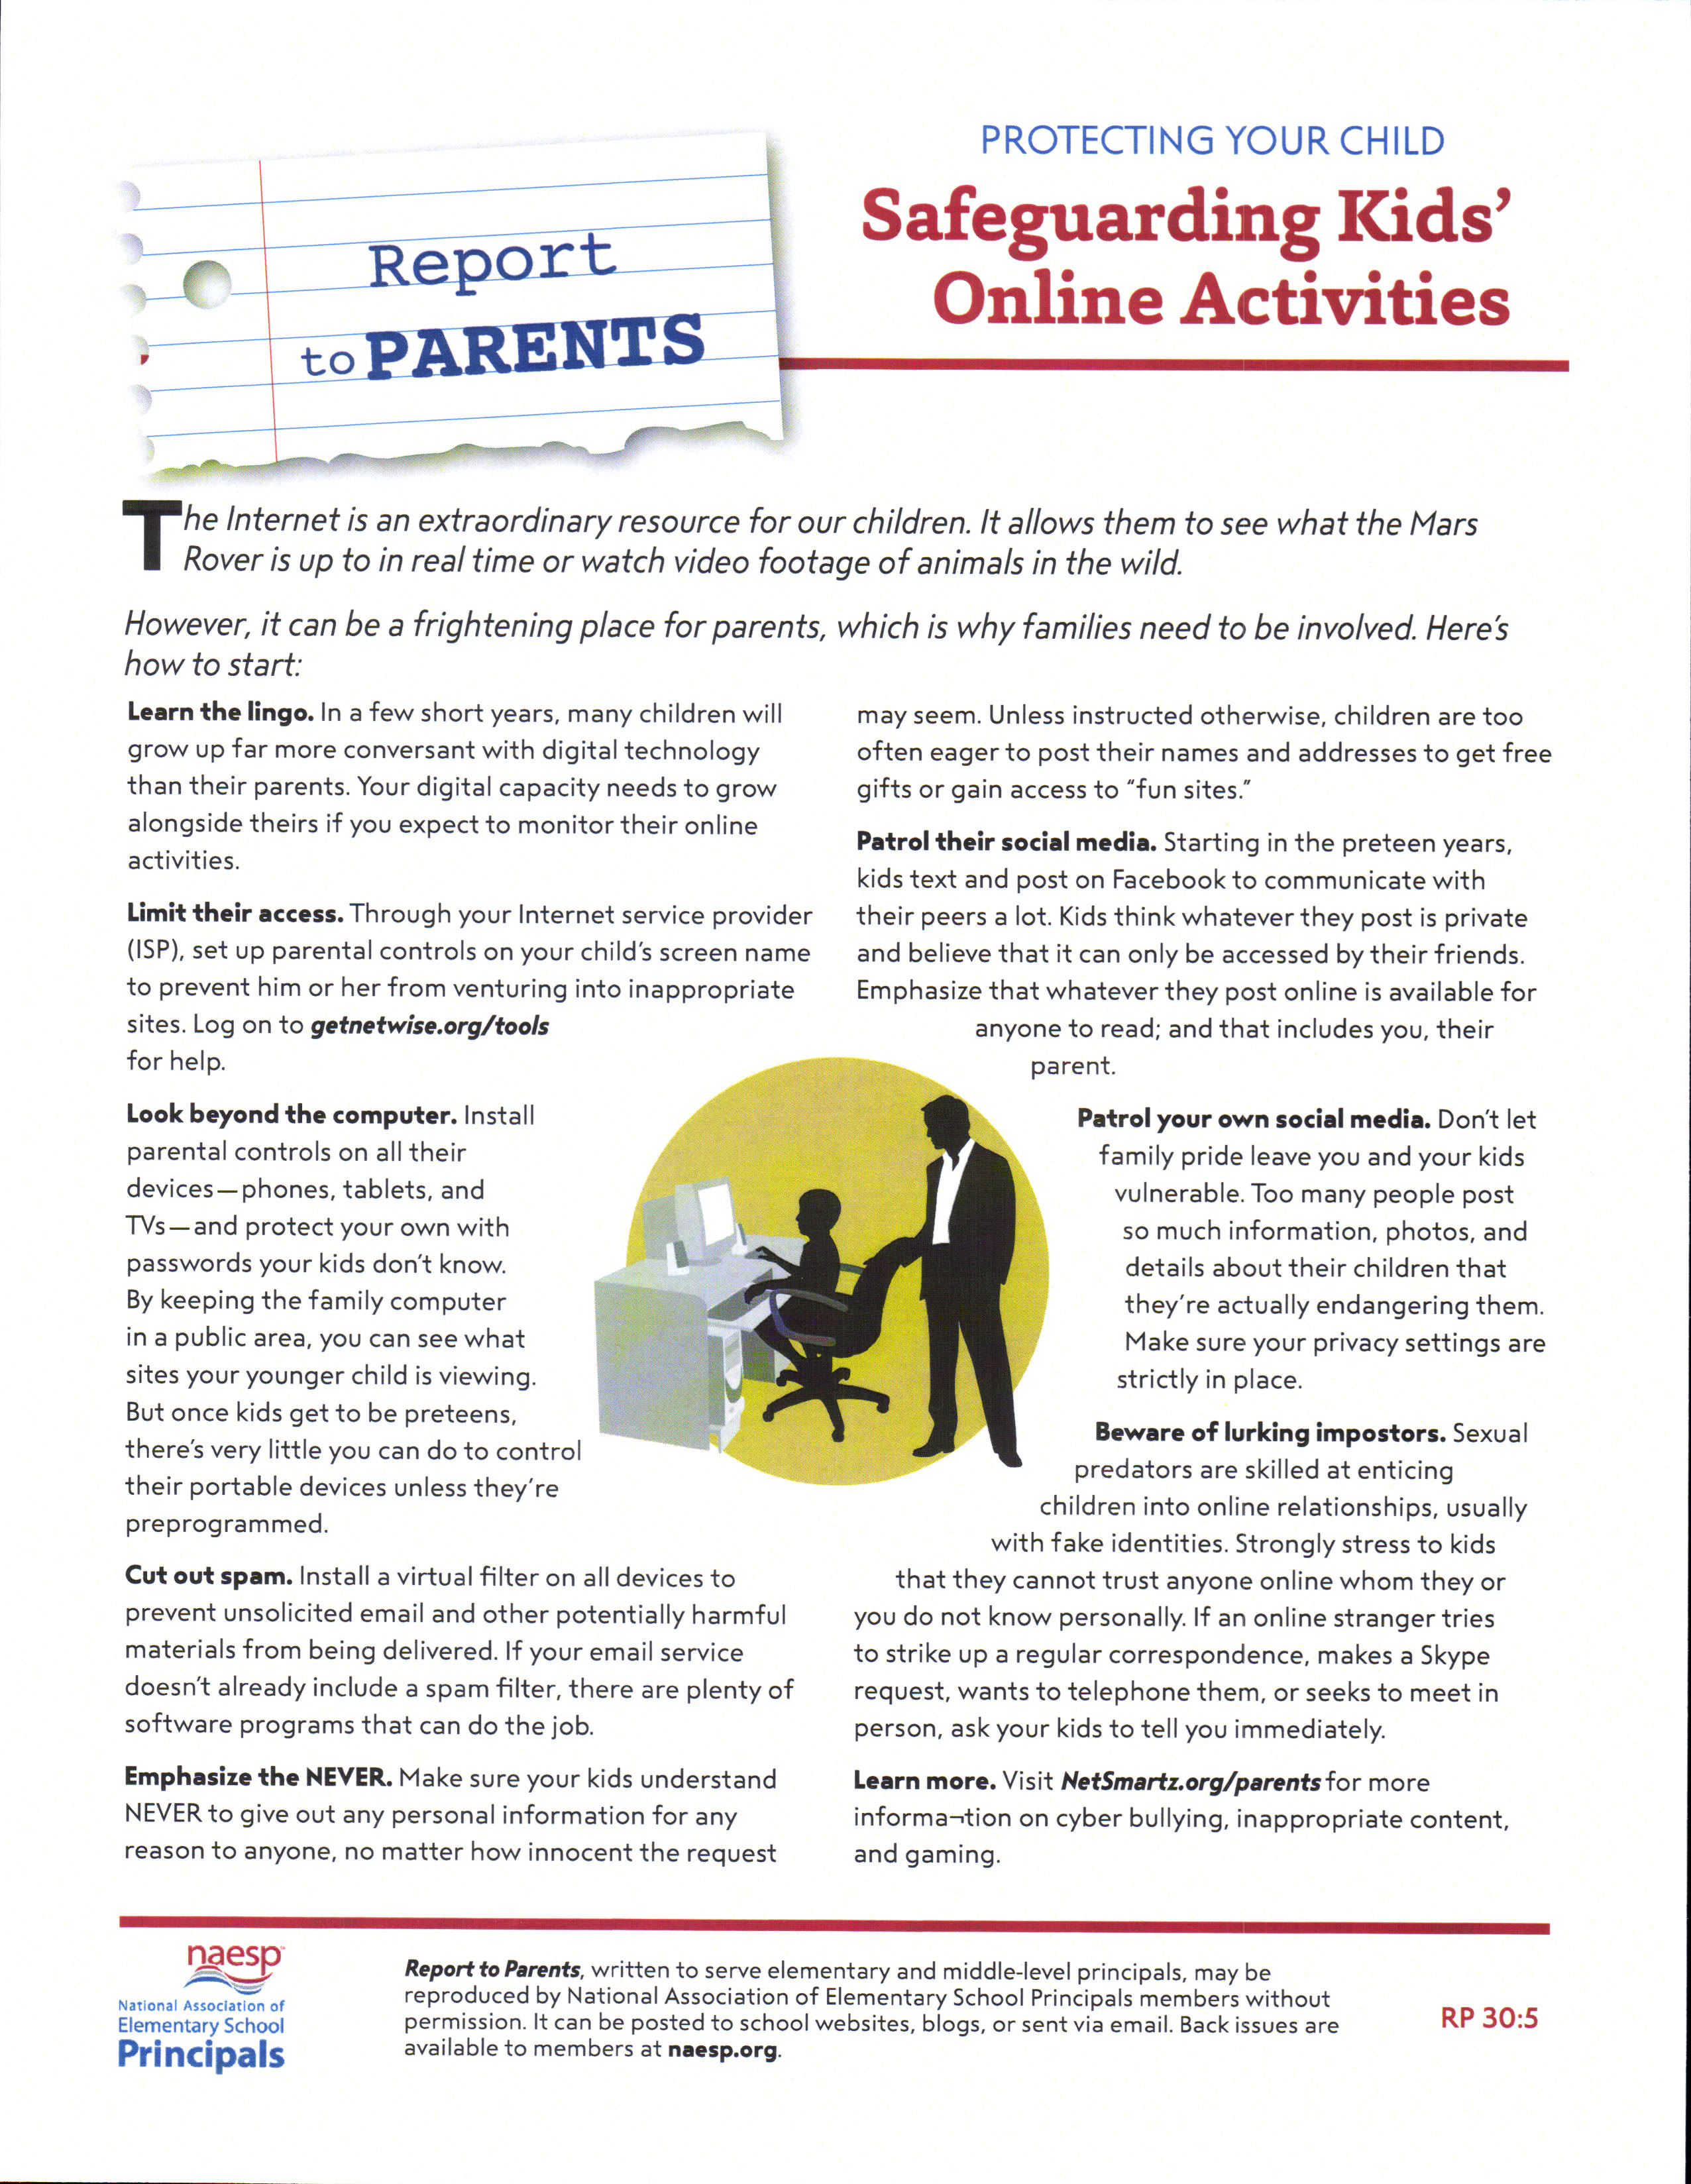 Safeguarding Kids Online Activities